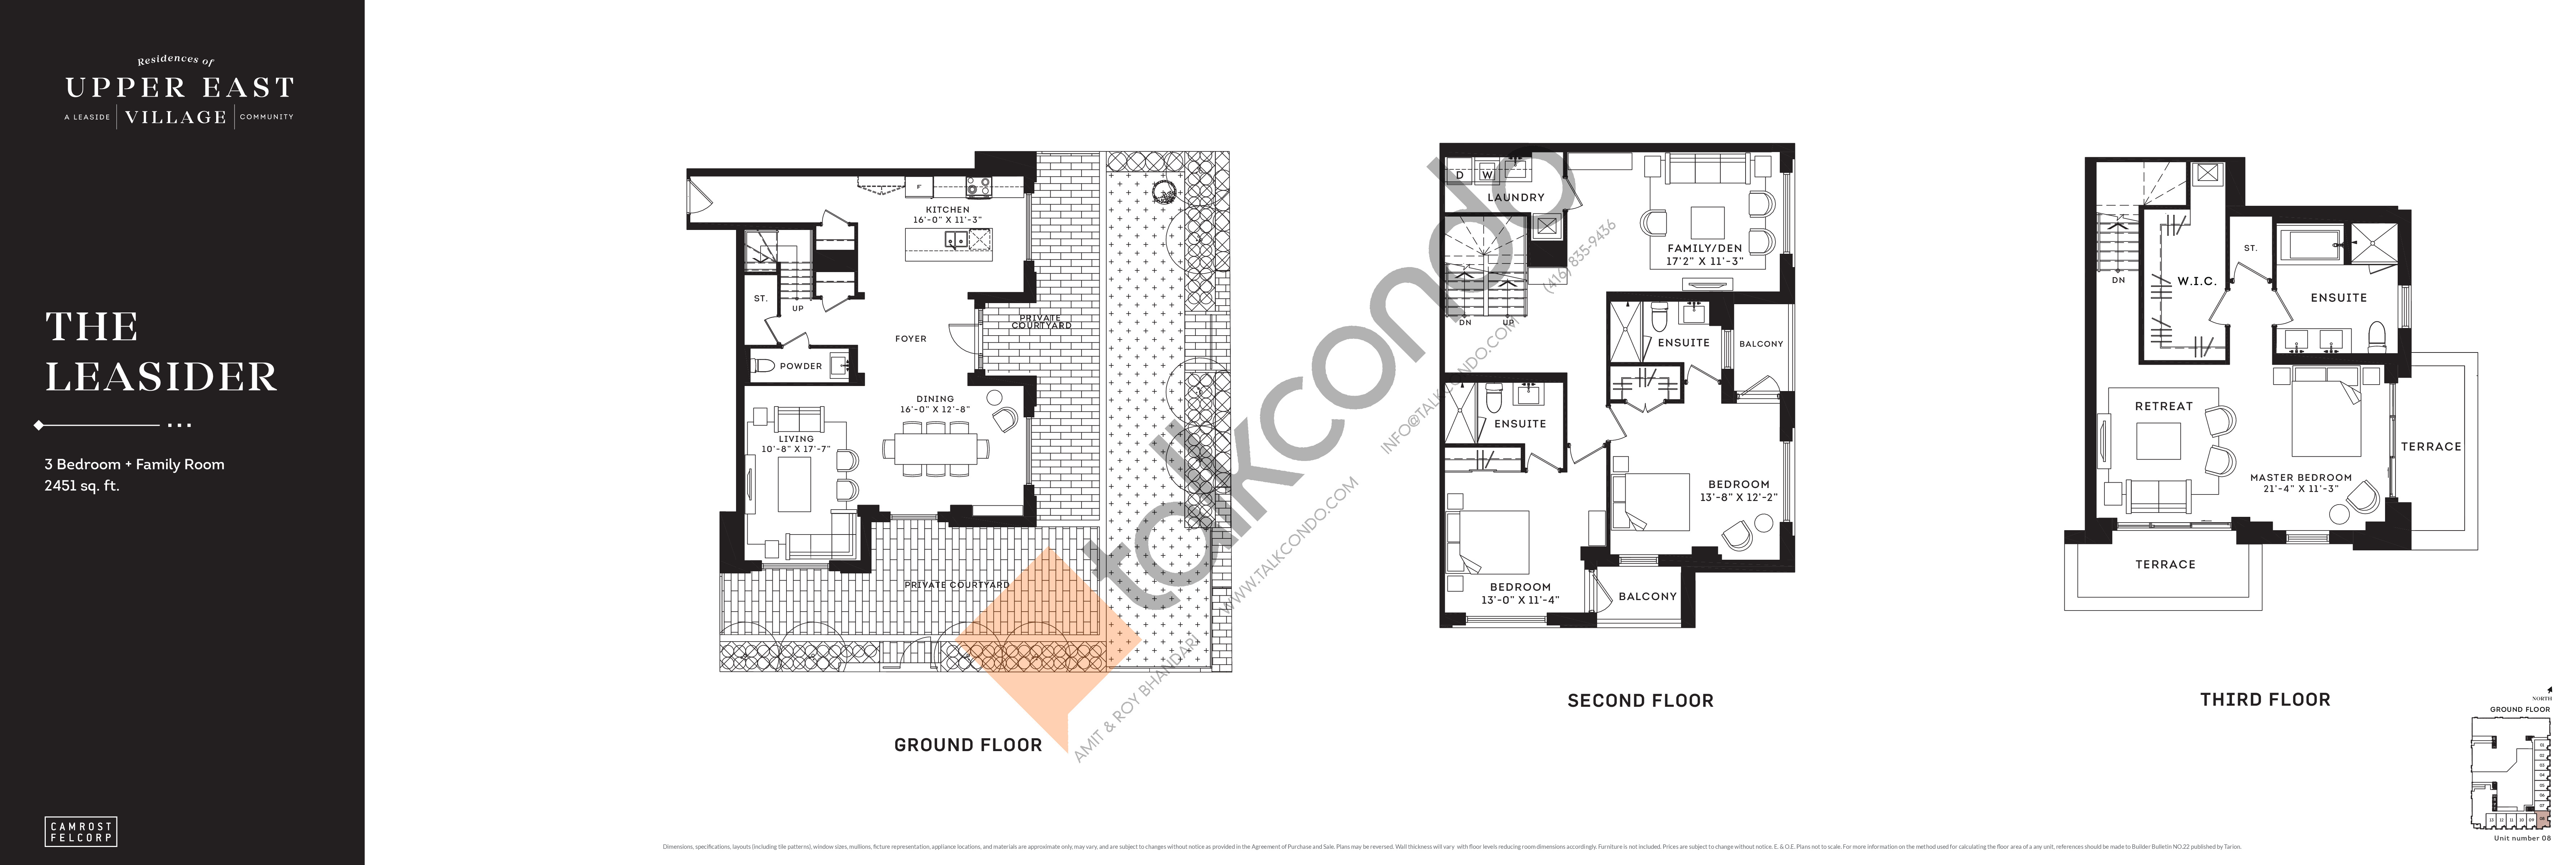 The Leasider Floor Plan at Upper East Village Condos - 2451 sq.ft